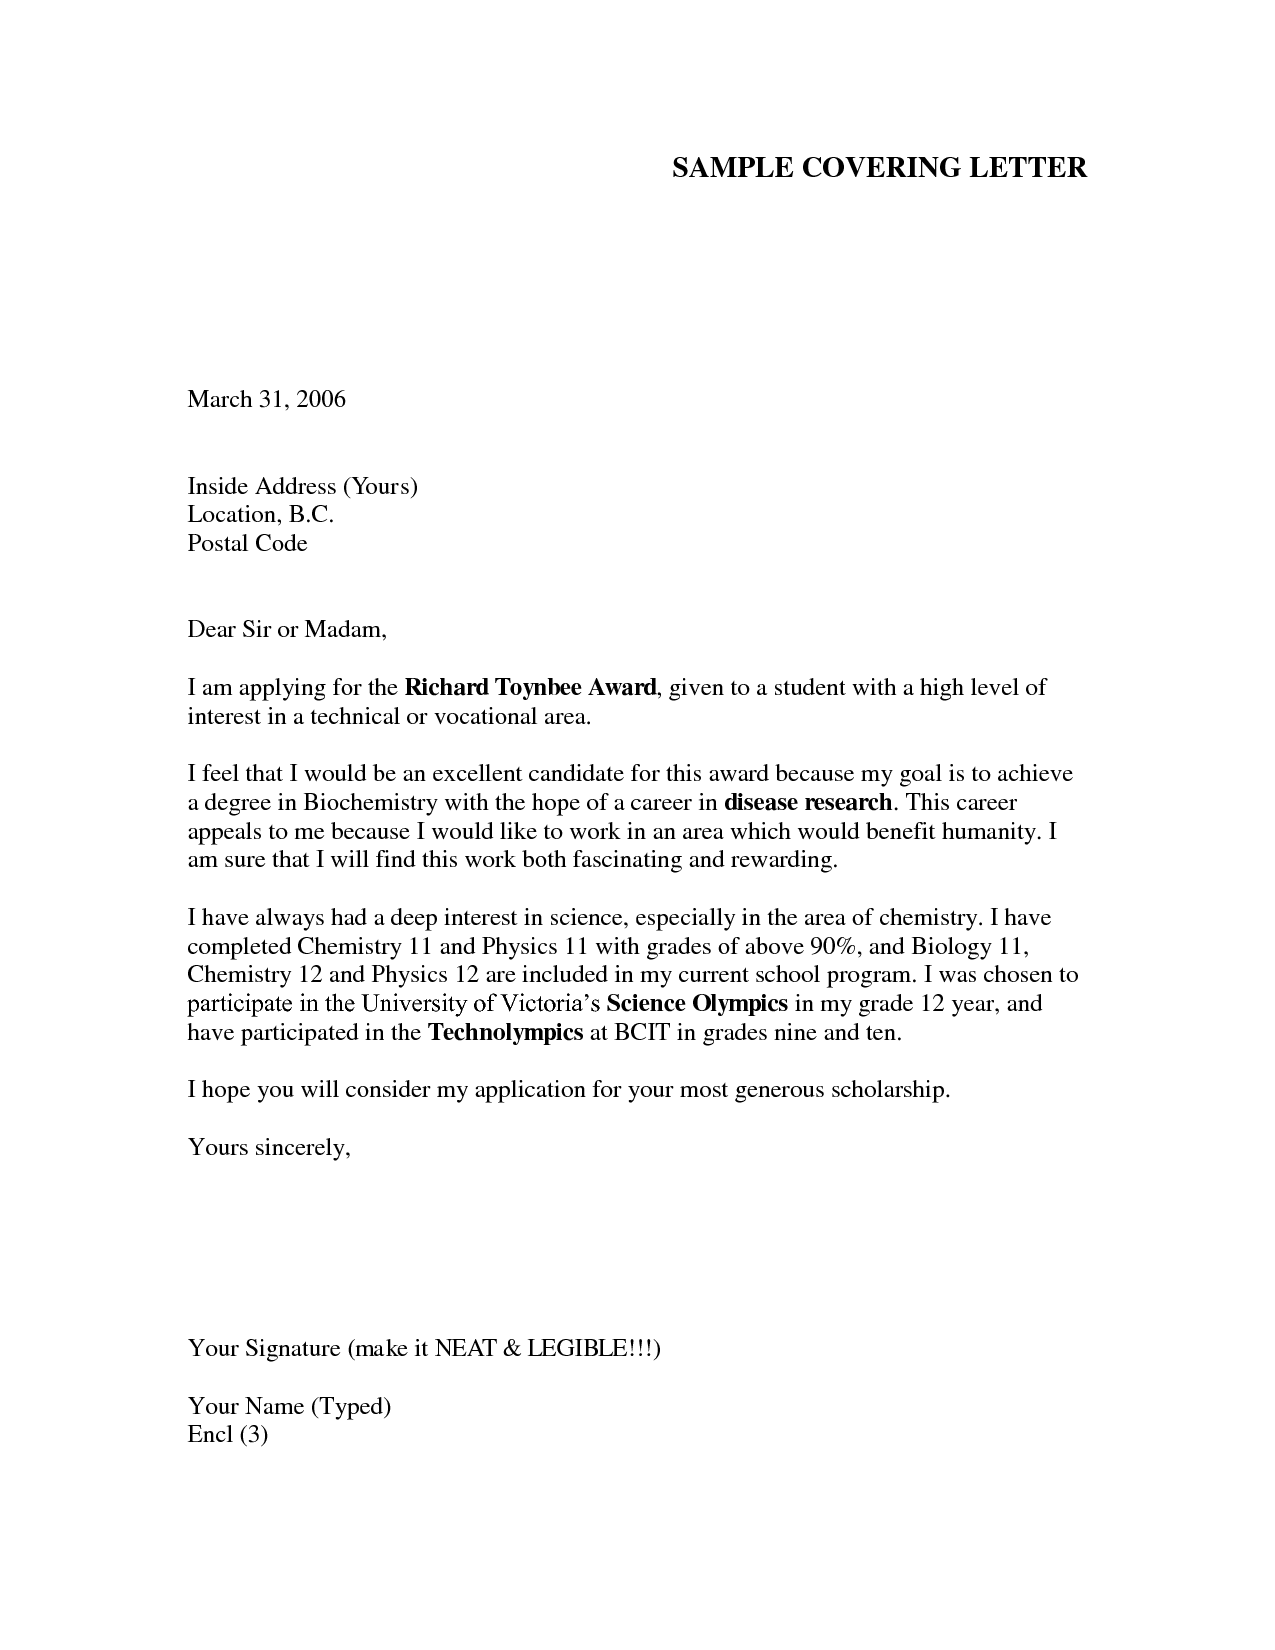 Examples Cover Letters For Resumes Cover Letter Example For Job Application Cover Letter Example For